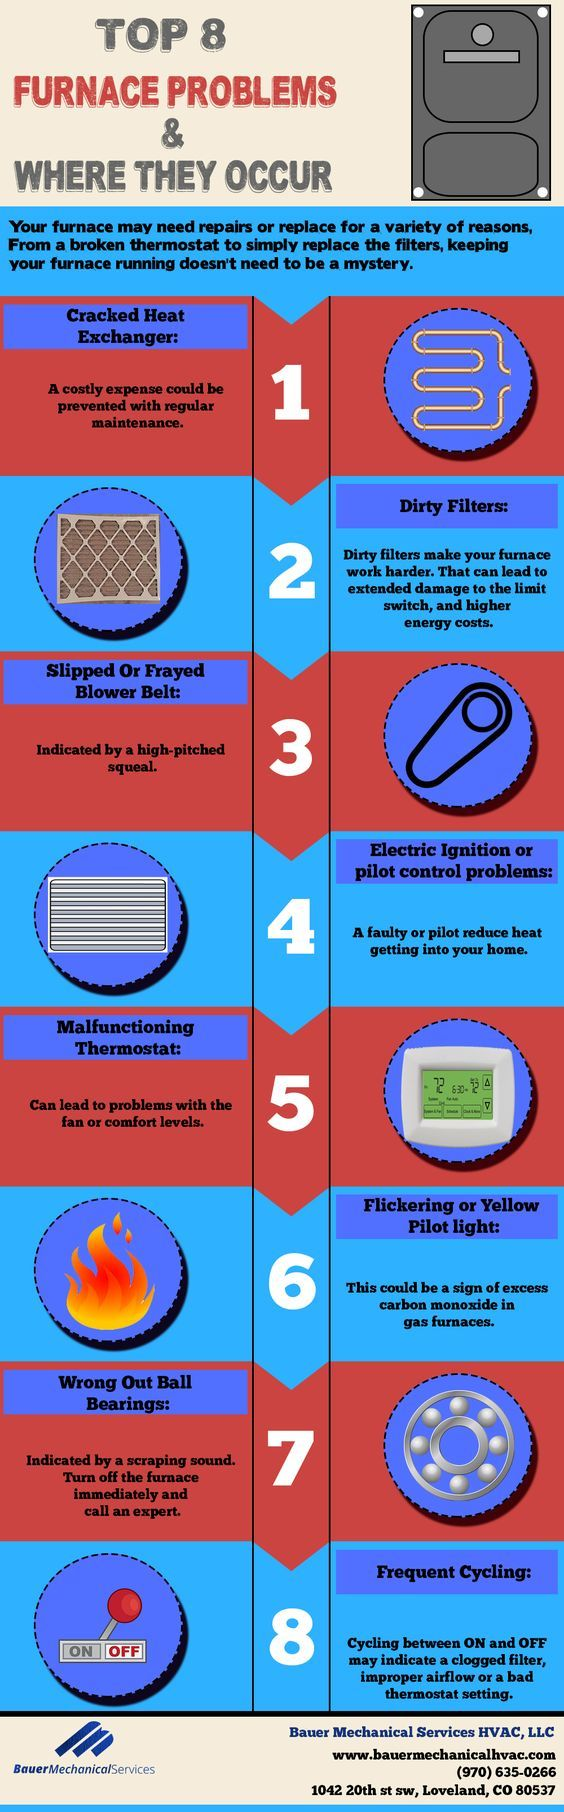 Top Furnace Problems And Where They Occur (infographic)